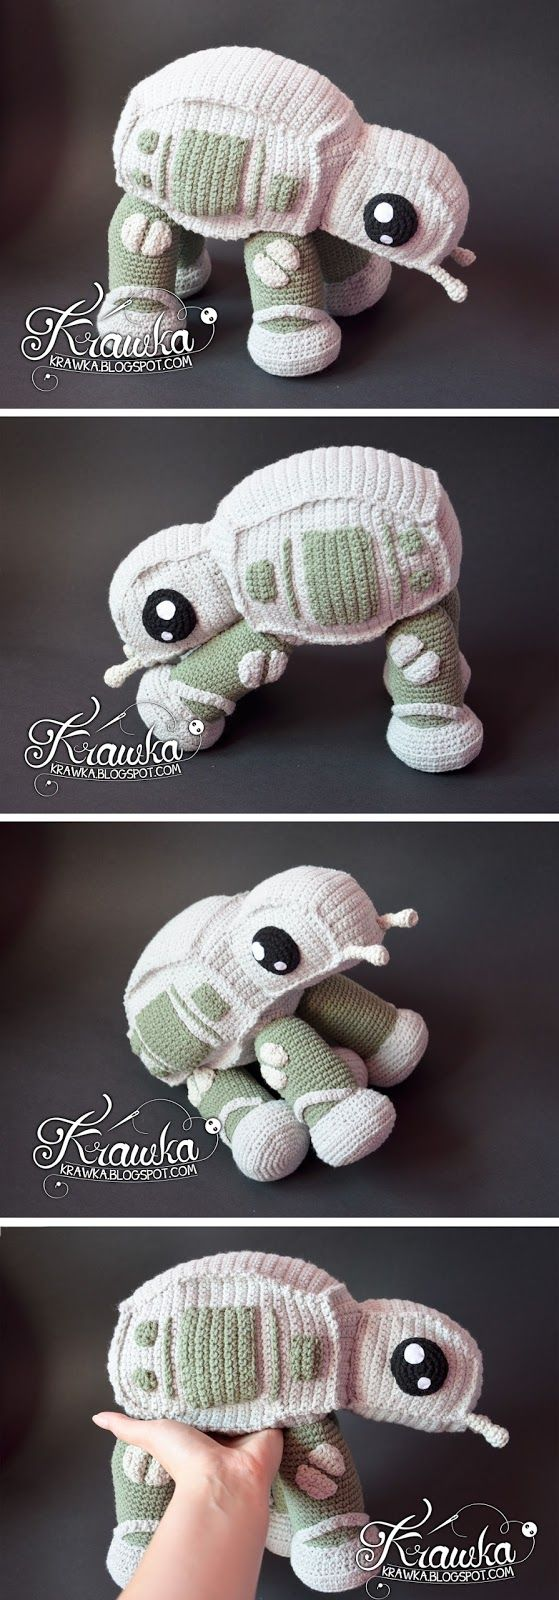 https://www.etsy.com/listing/463377288/at-at-walker-crochet-pattern-star-wars?ref=shop_home_active_1